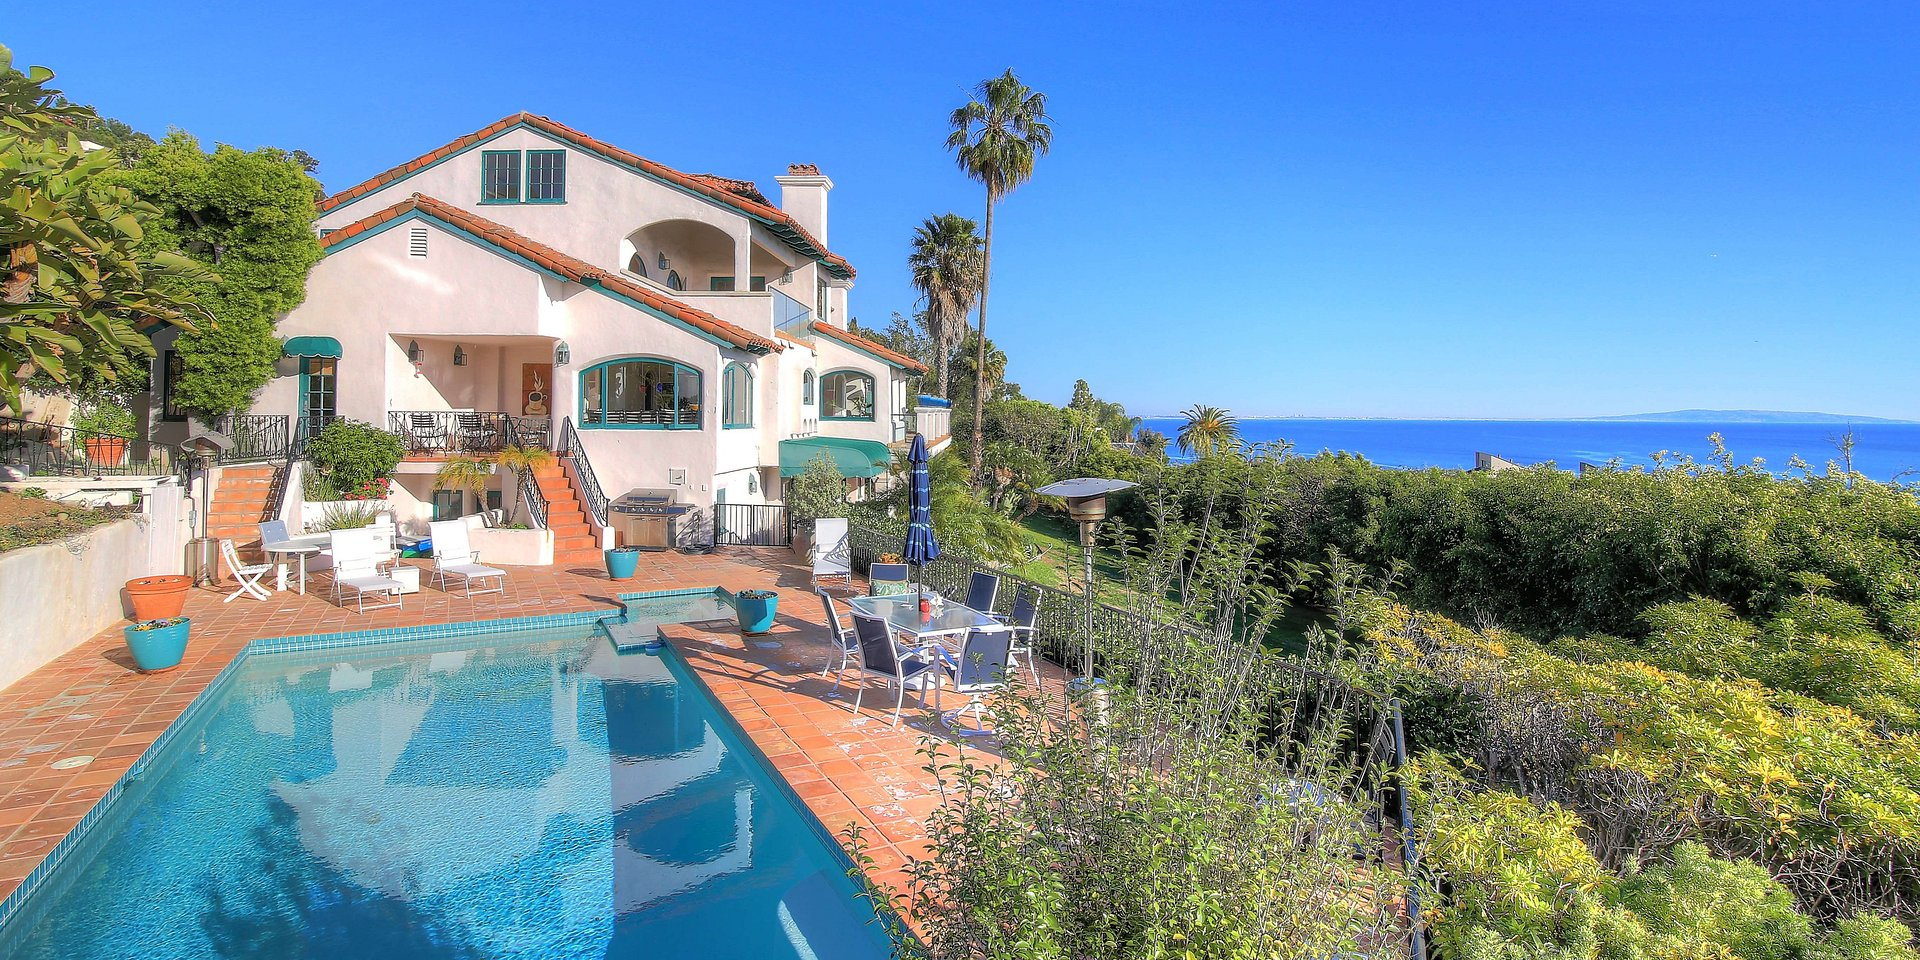 Coldwell Banker Realty Lists Malibu Property for $6.995 Million